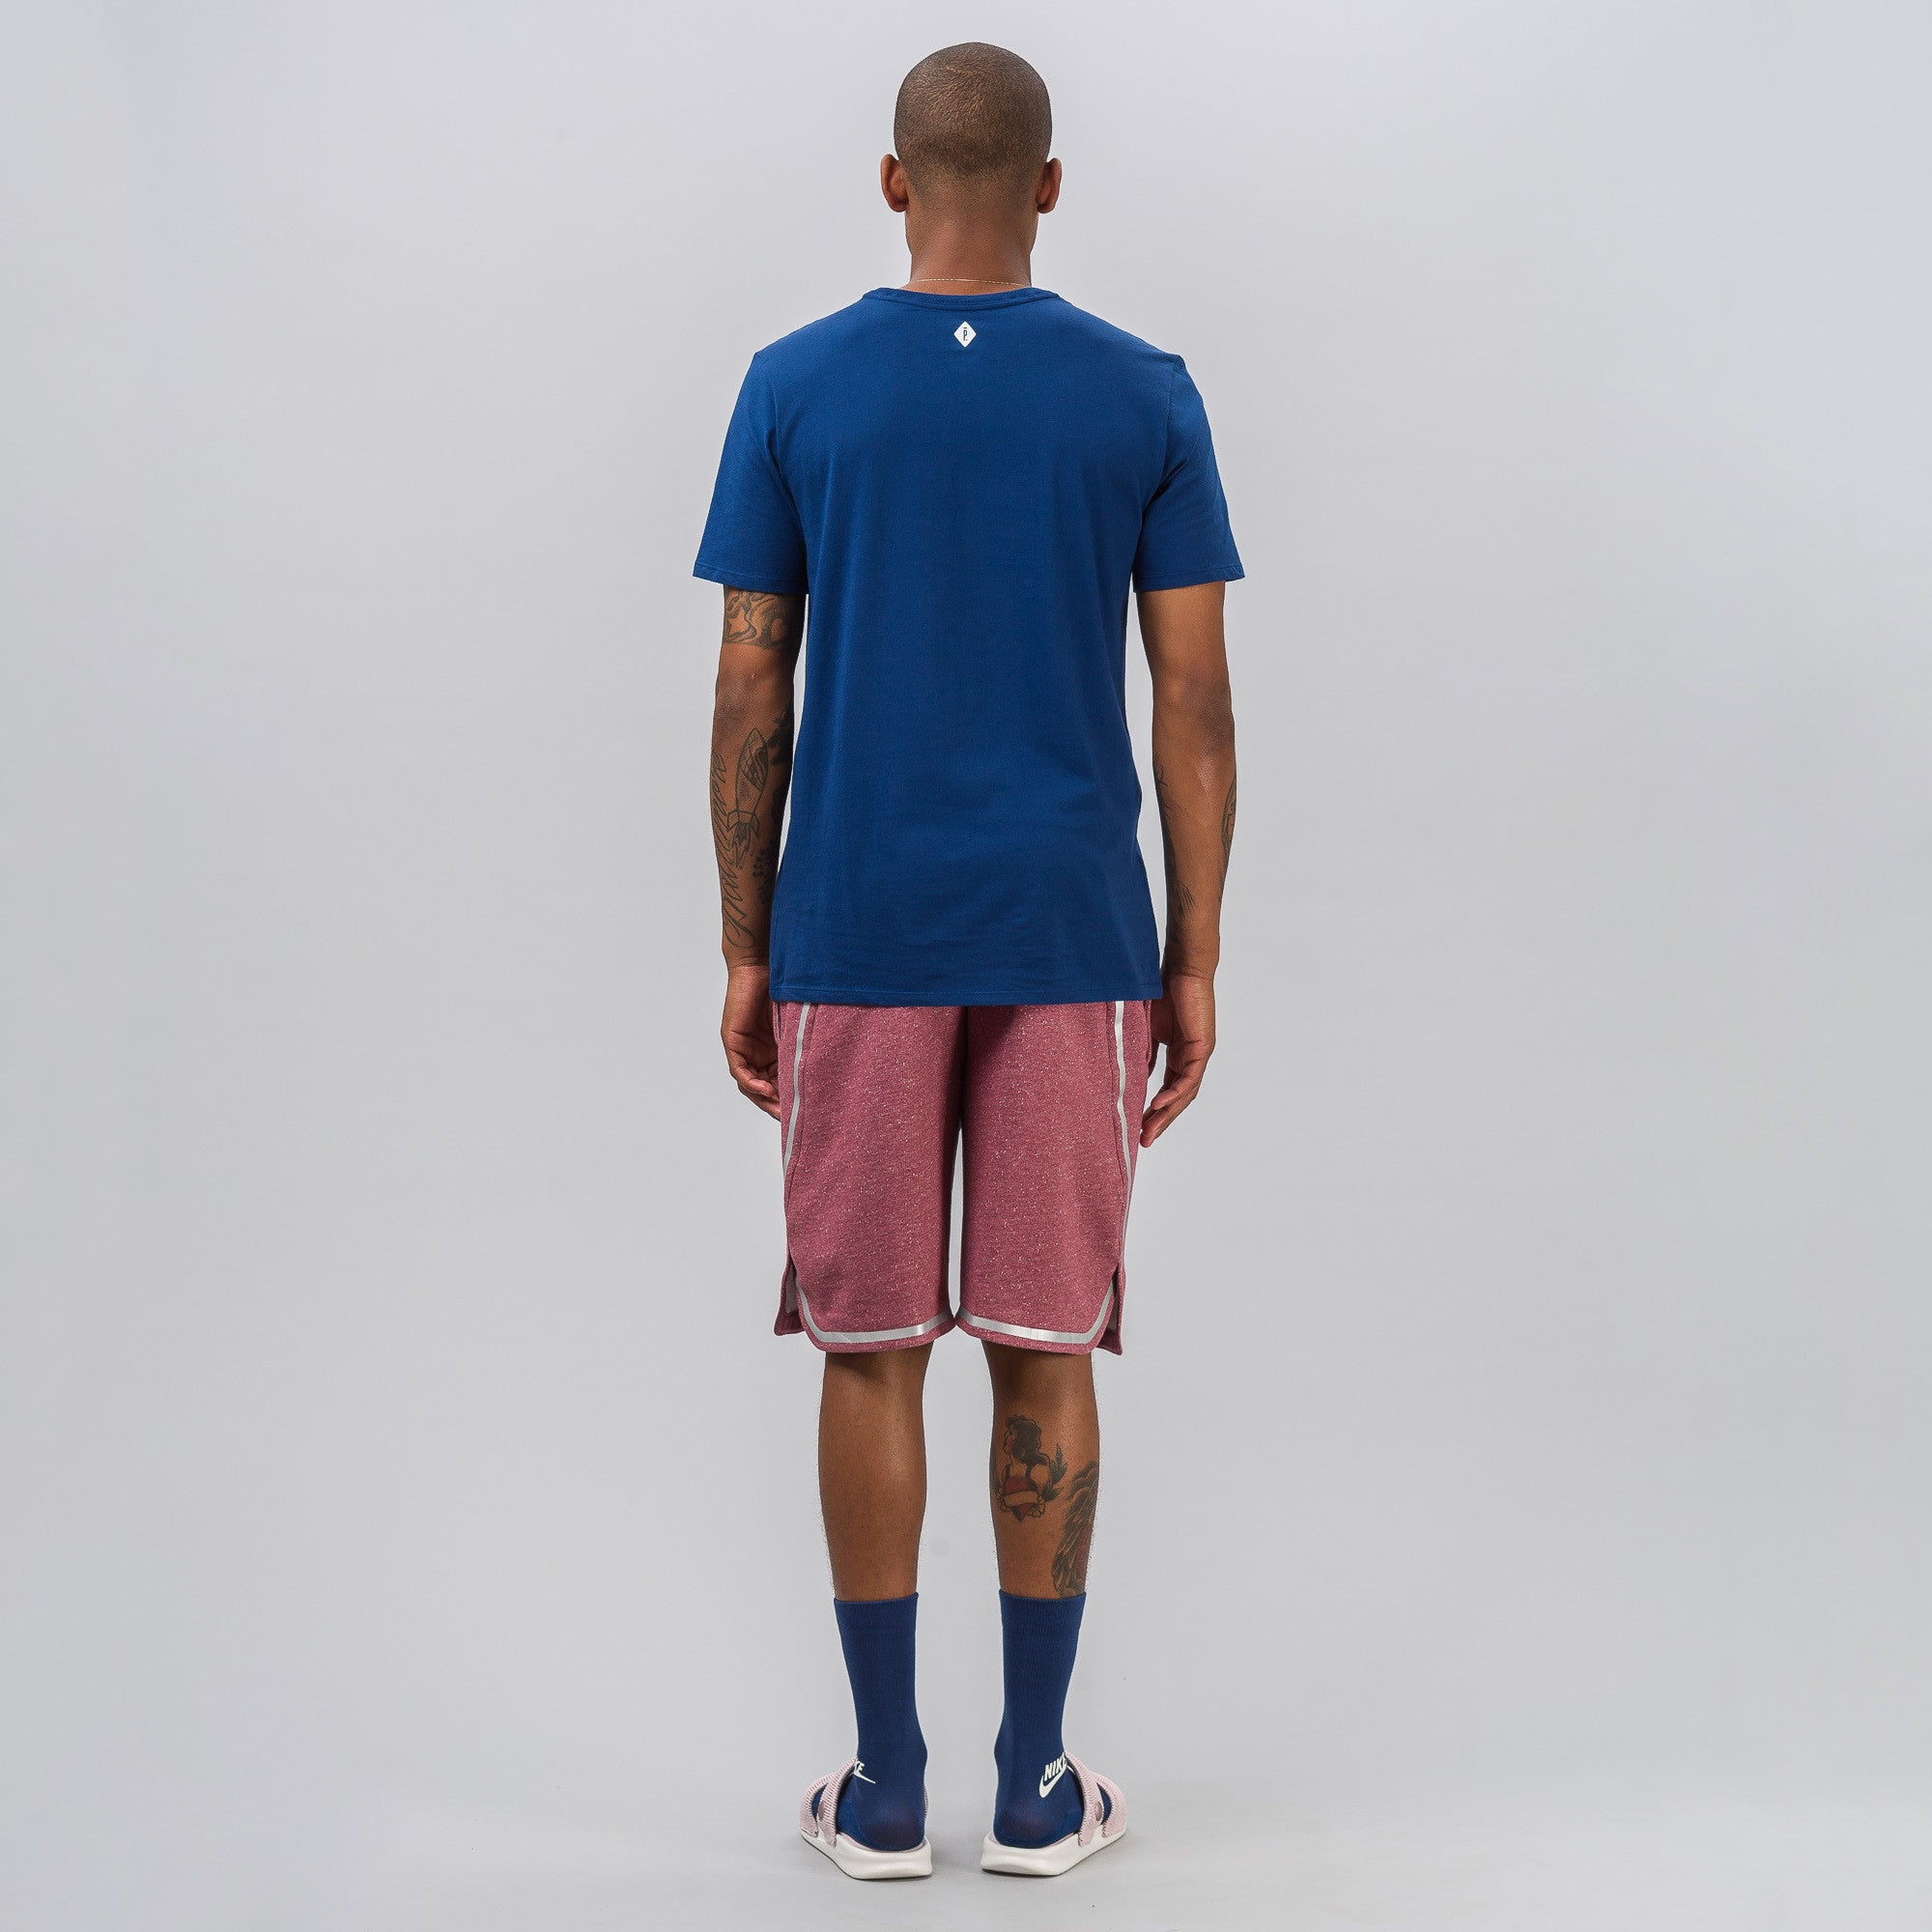 Nikelab x Pigalle Basketball Short in Port